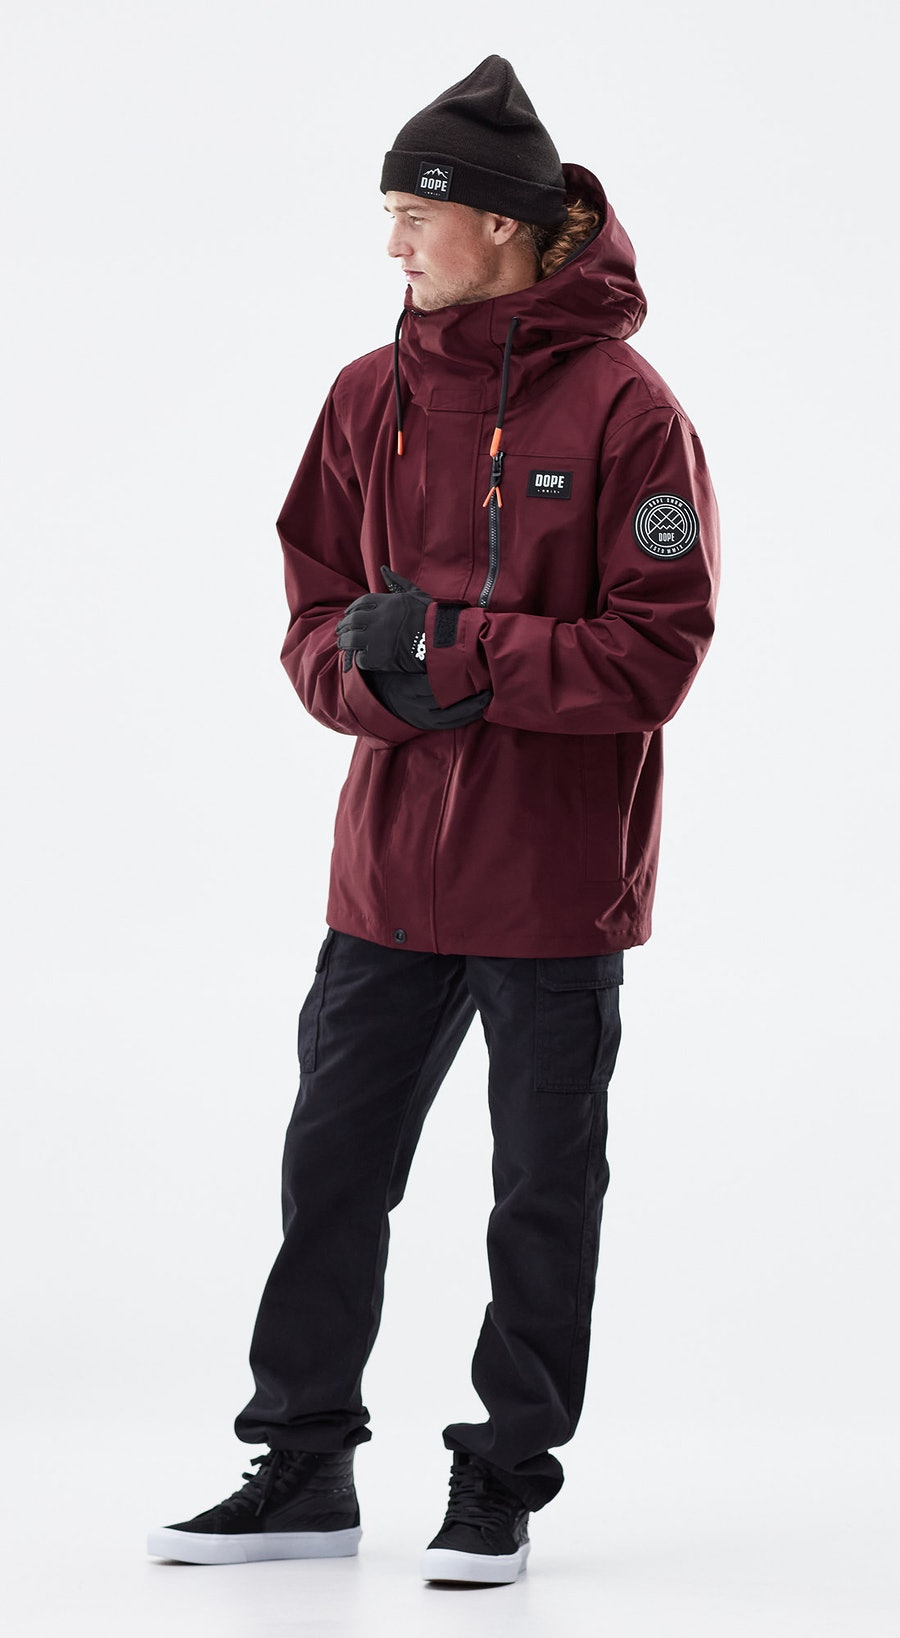 Dope Blizzard FZ Burgundy Outfit Multi